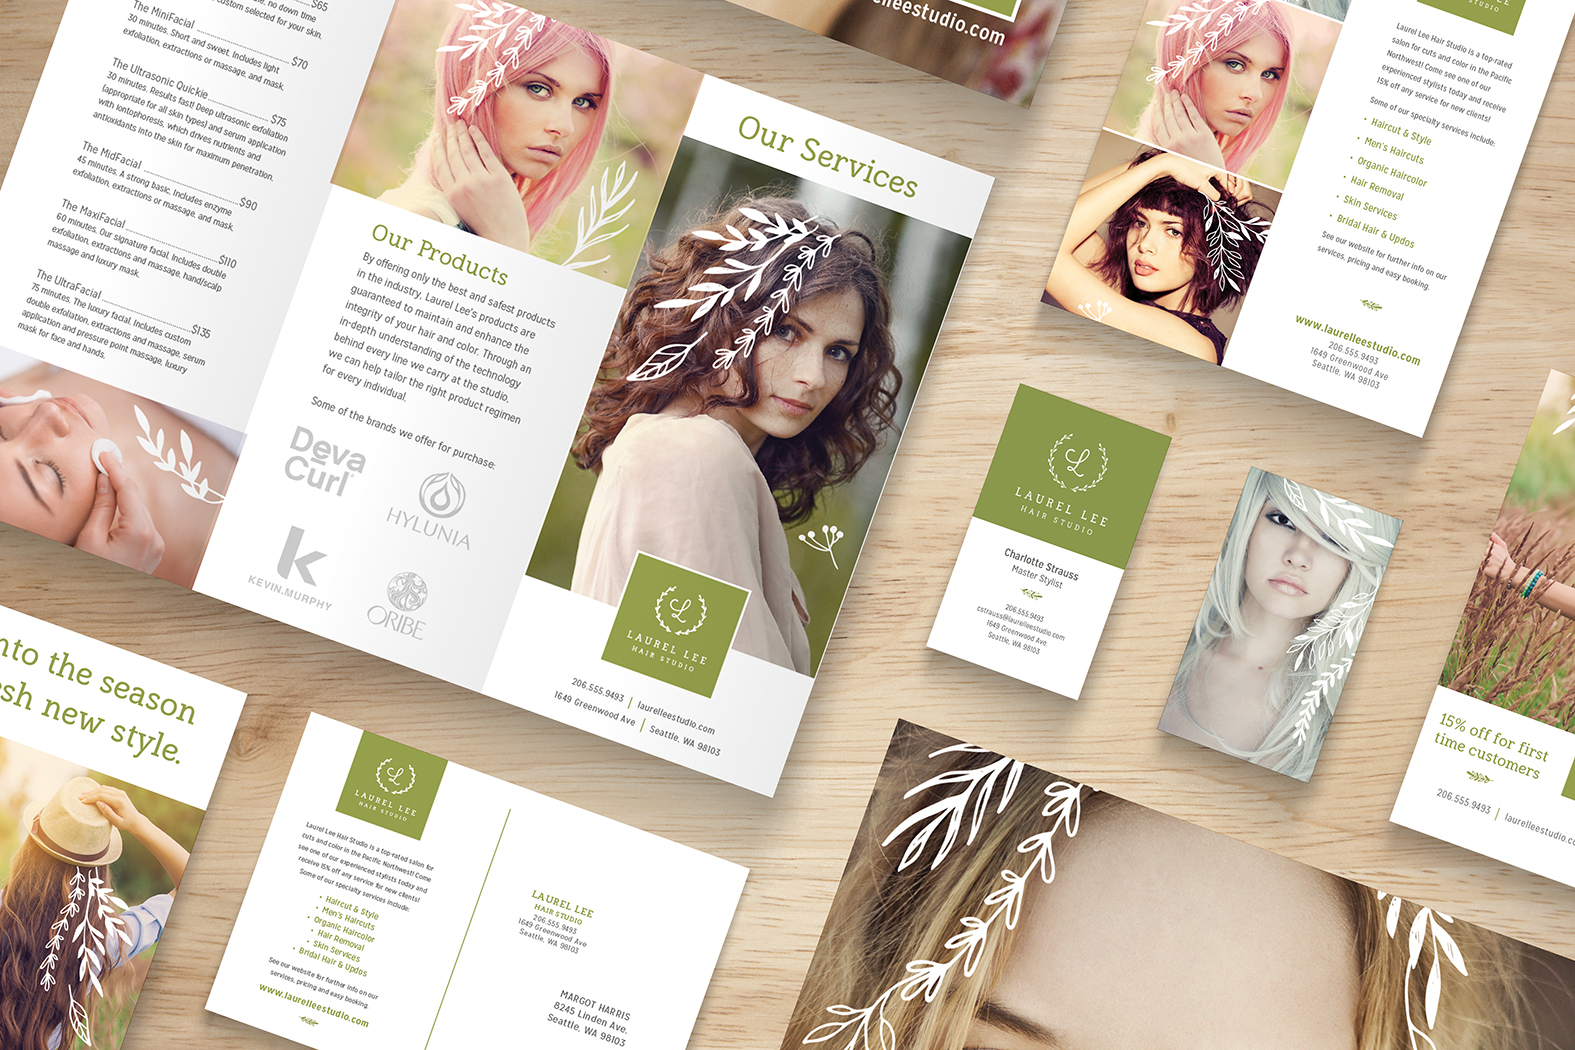 Laurel Lee Salon brand identity and marketing collateral developed for RPI product samples.